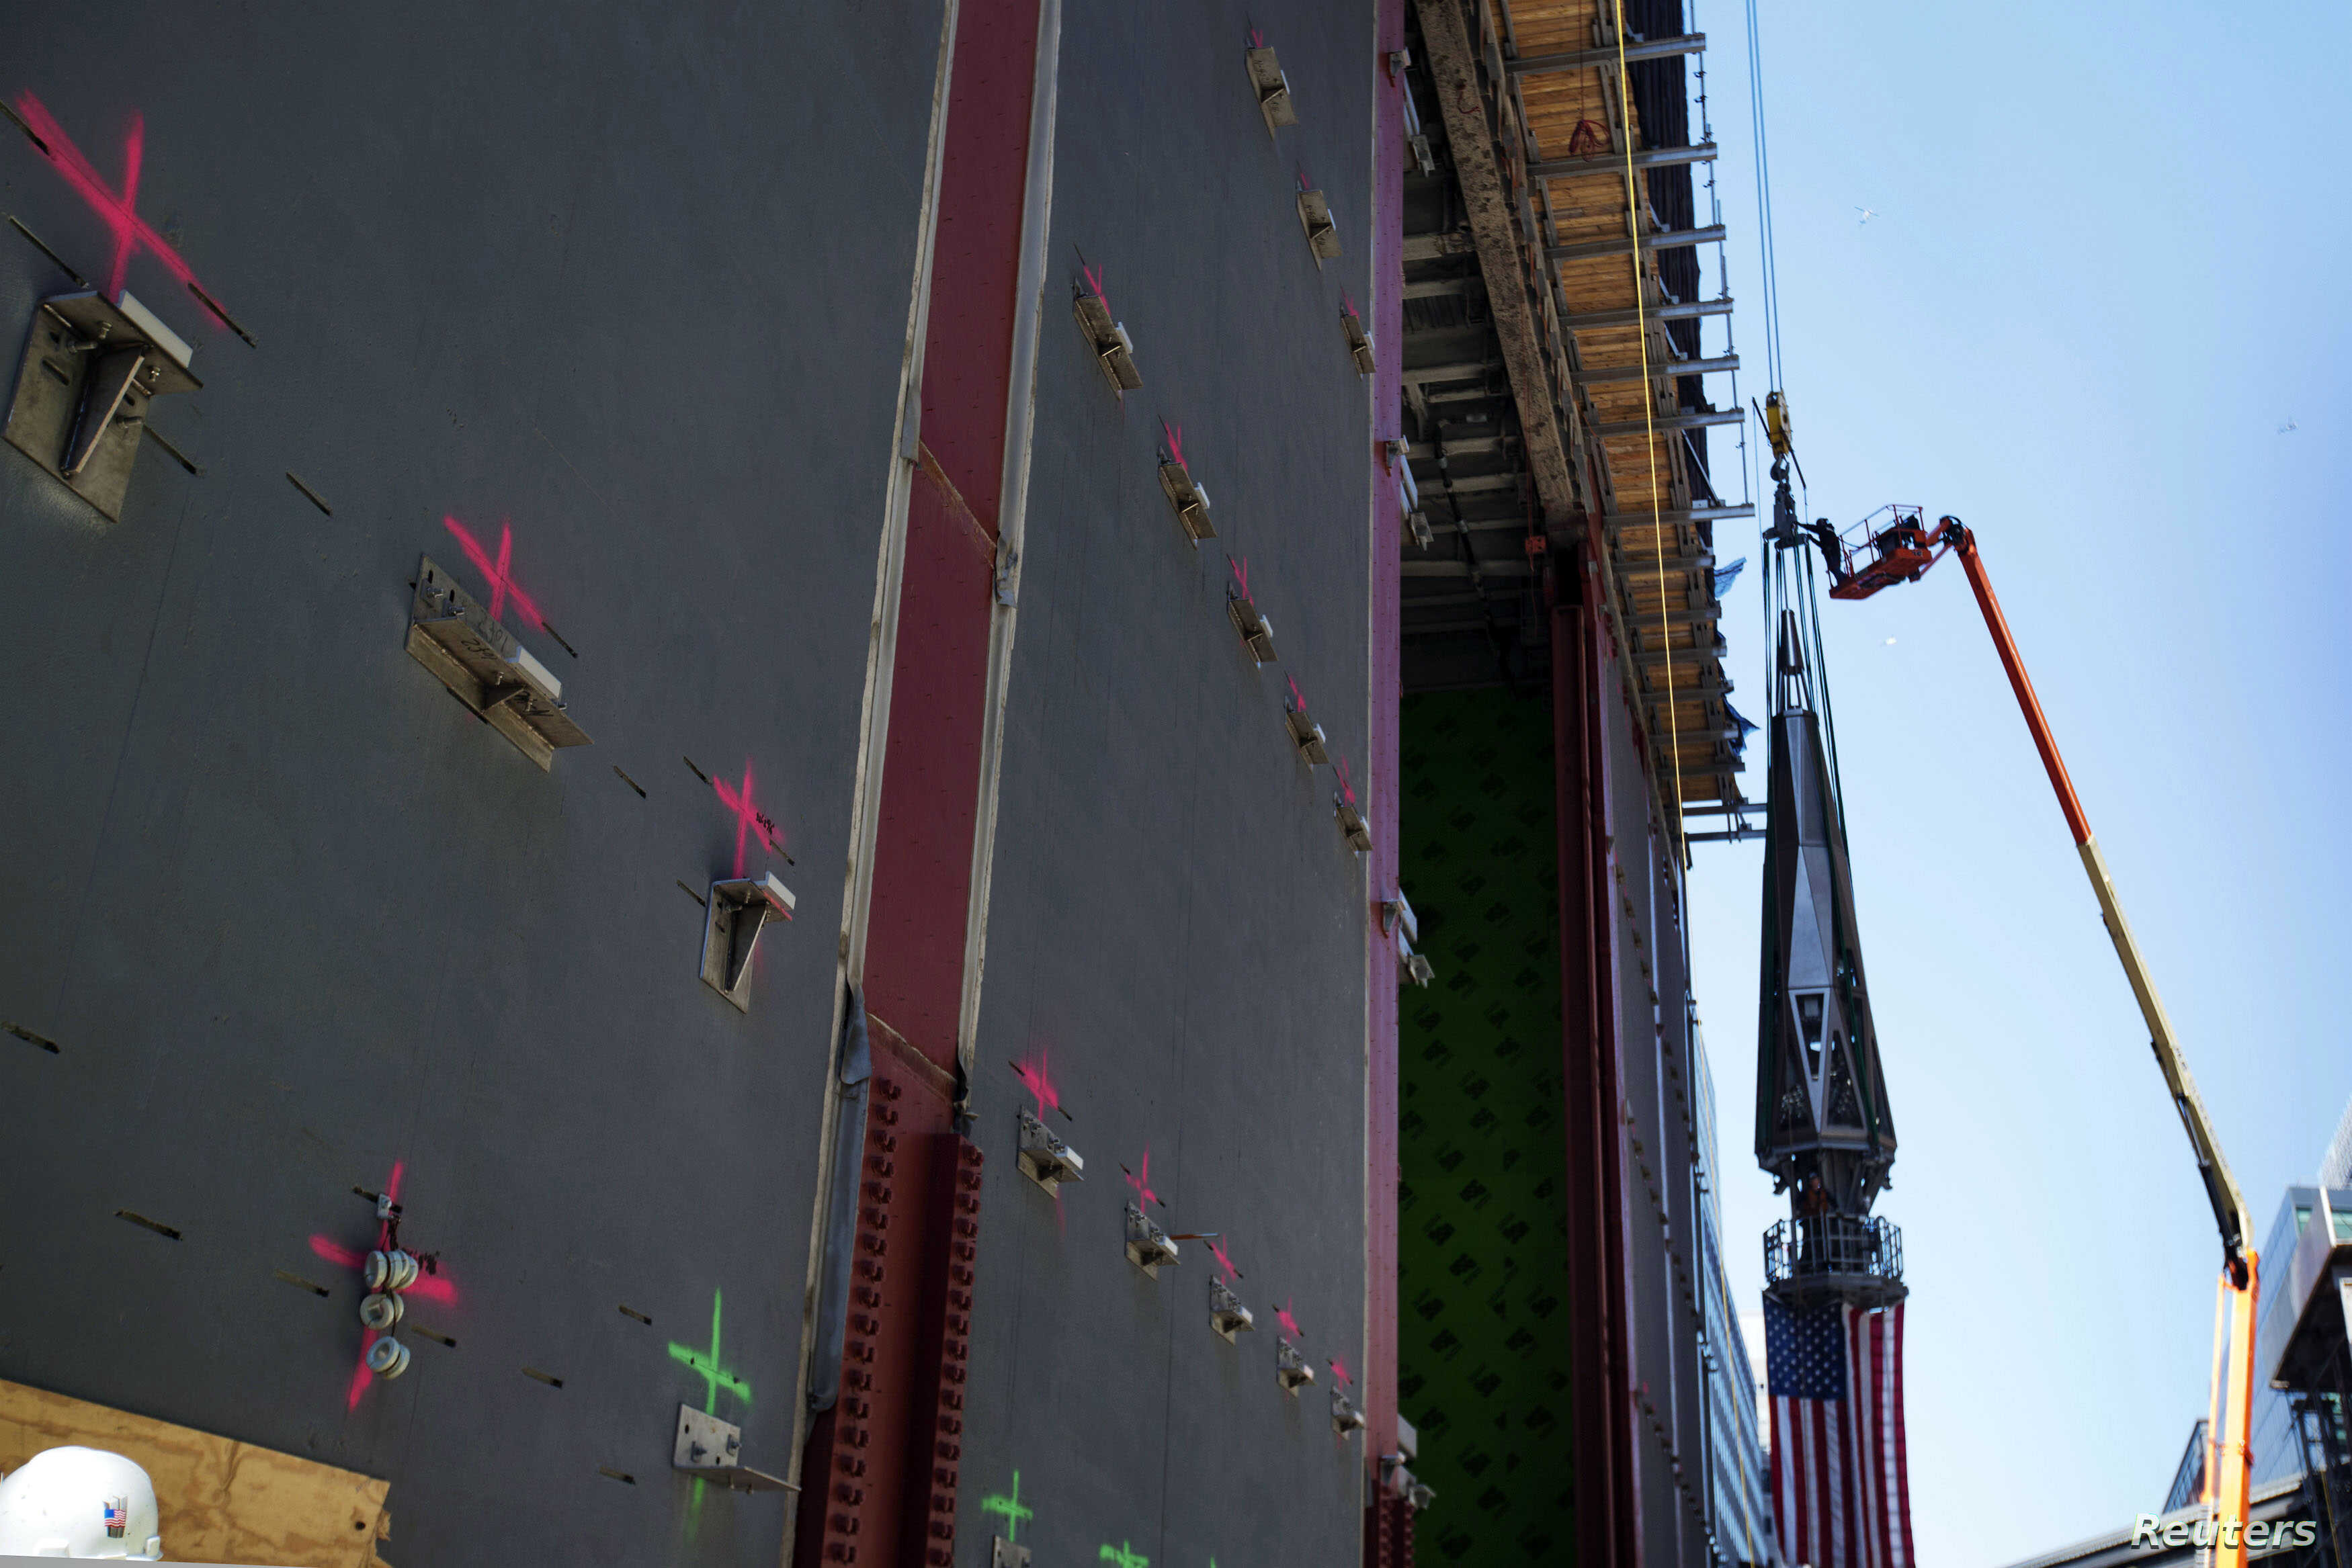 A Ground Zero worker adjusts a strap before the final piece of One World Trade Center's spire is lifted to the top of the building in New York, May 2, 2013.